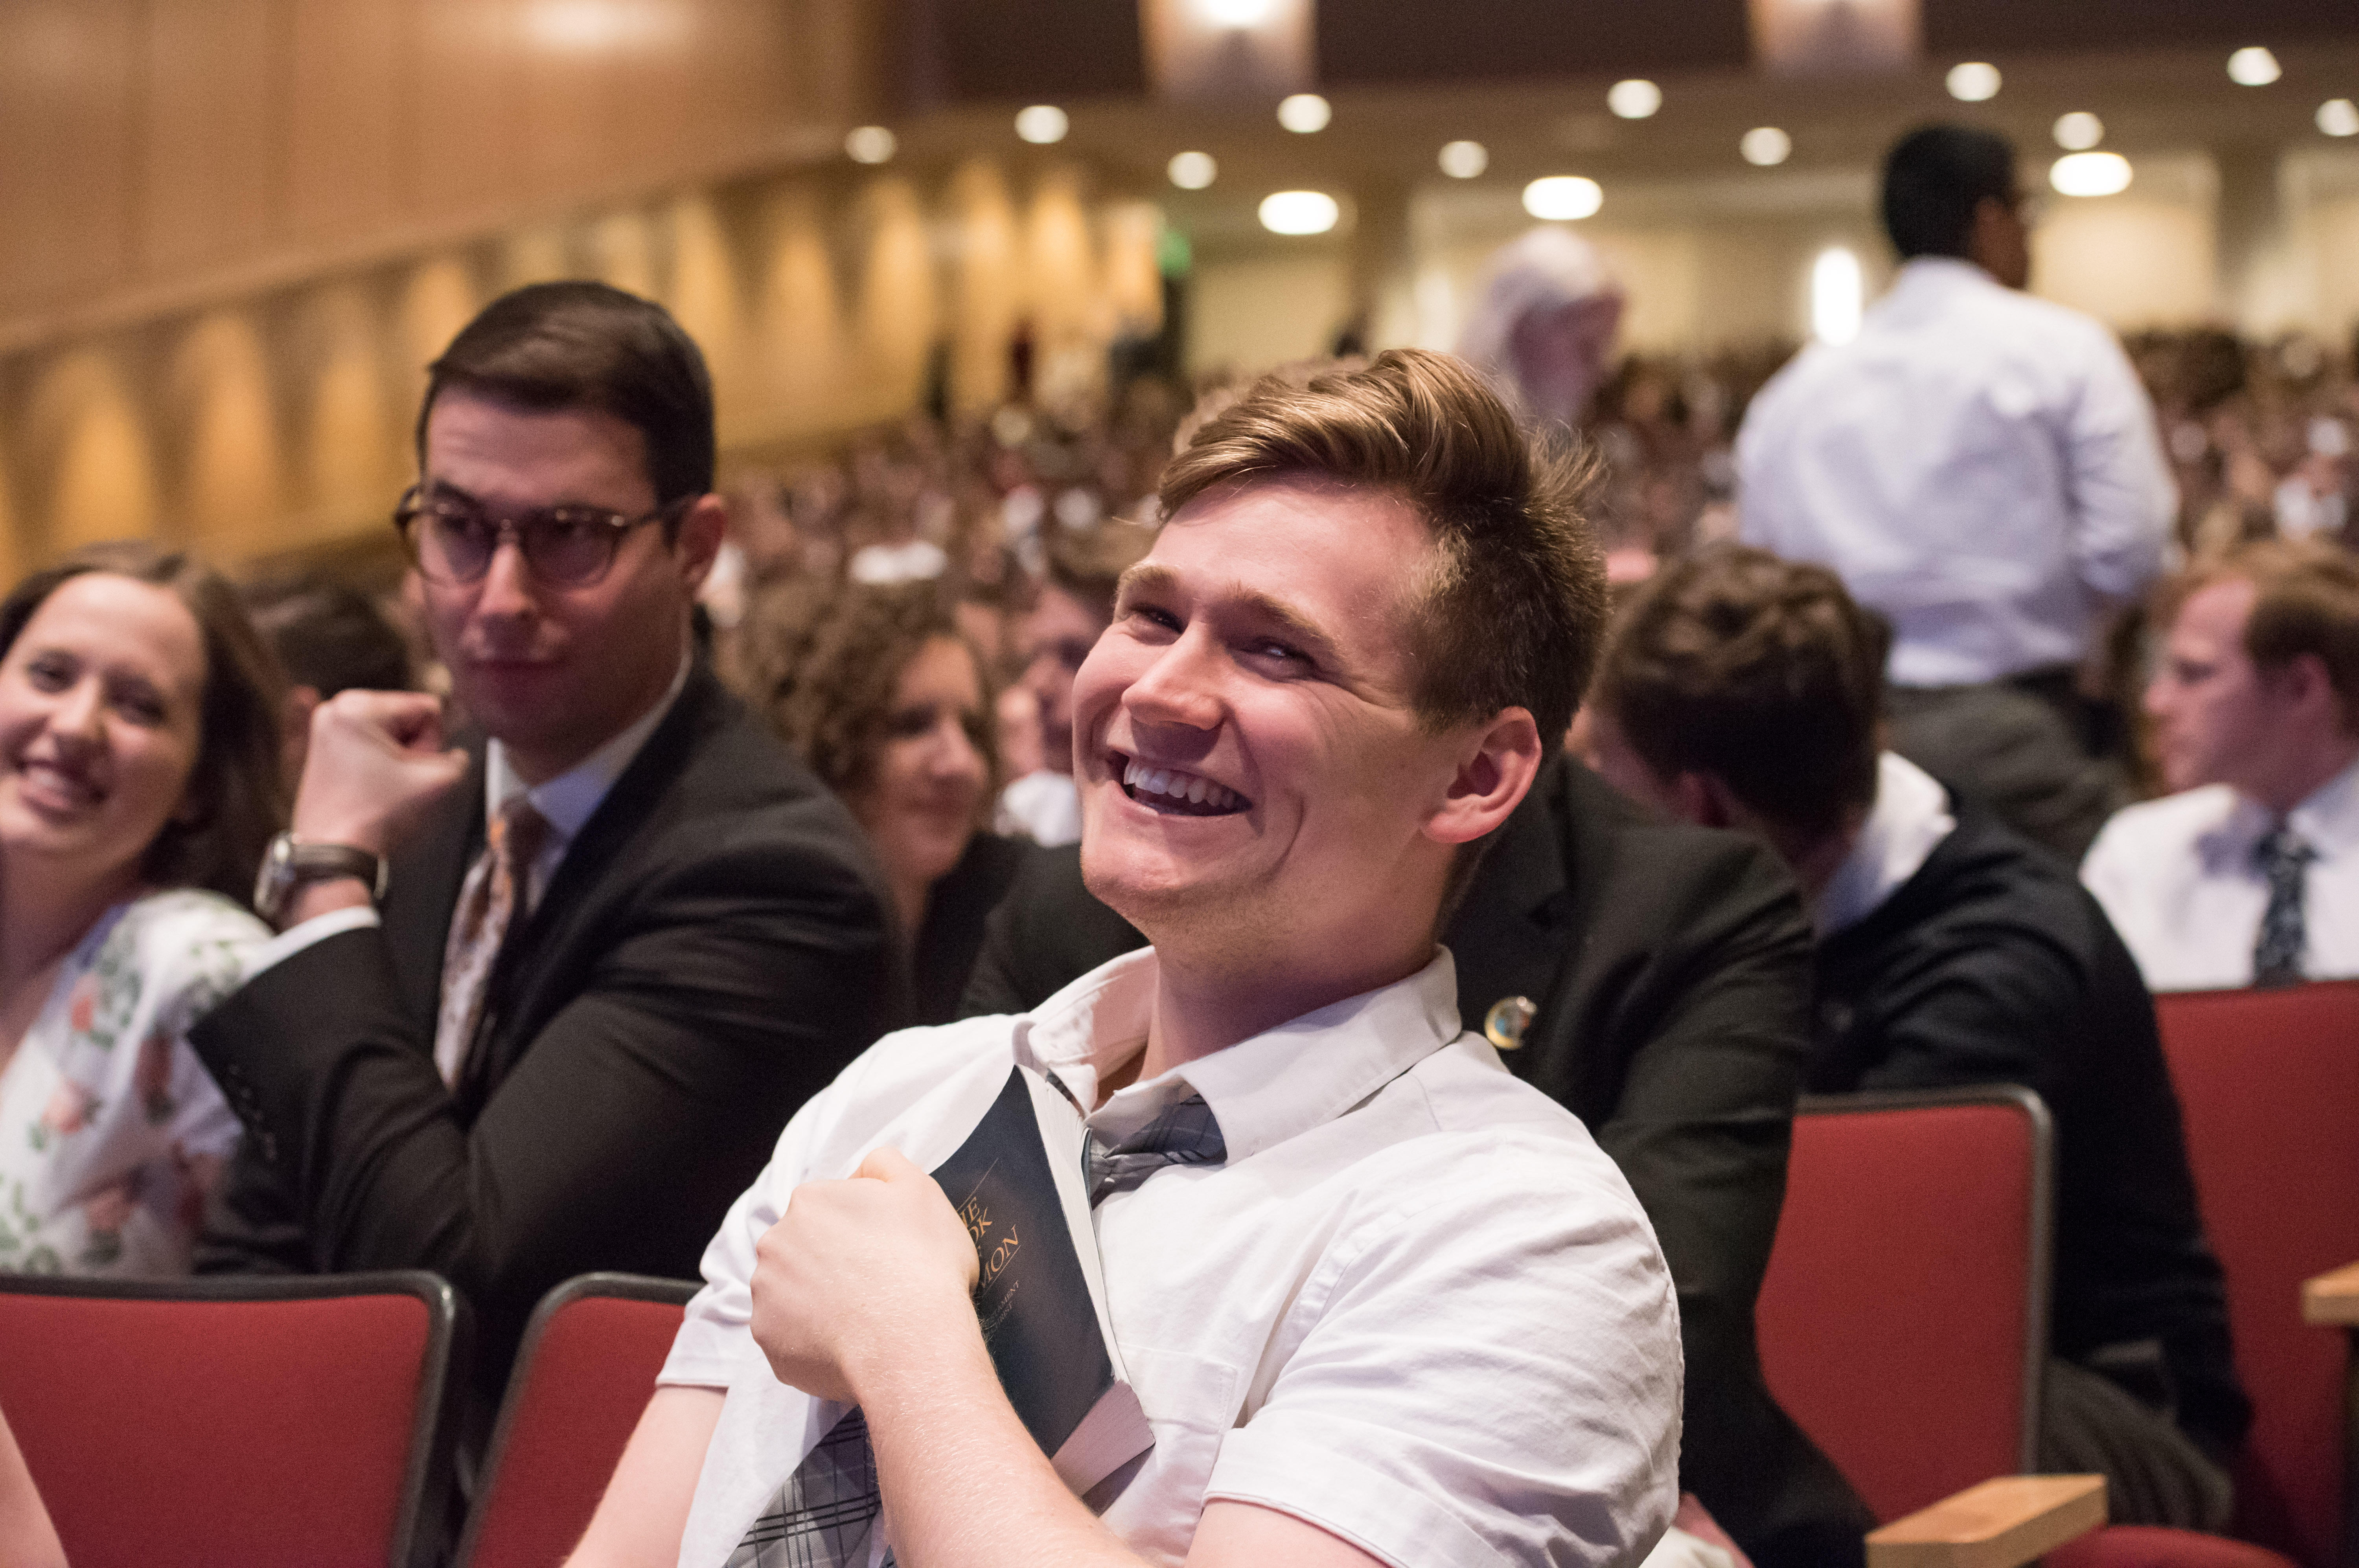 Students in the BYU-Idaho Center wait to hear Elder Ronald A. Rasband and his wife, Sister Melanie Rasband, speak during a devotional on April 28, 2019.